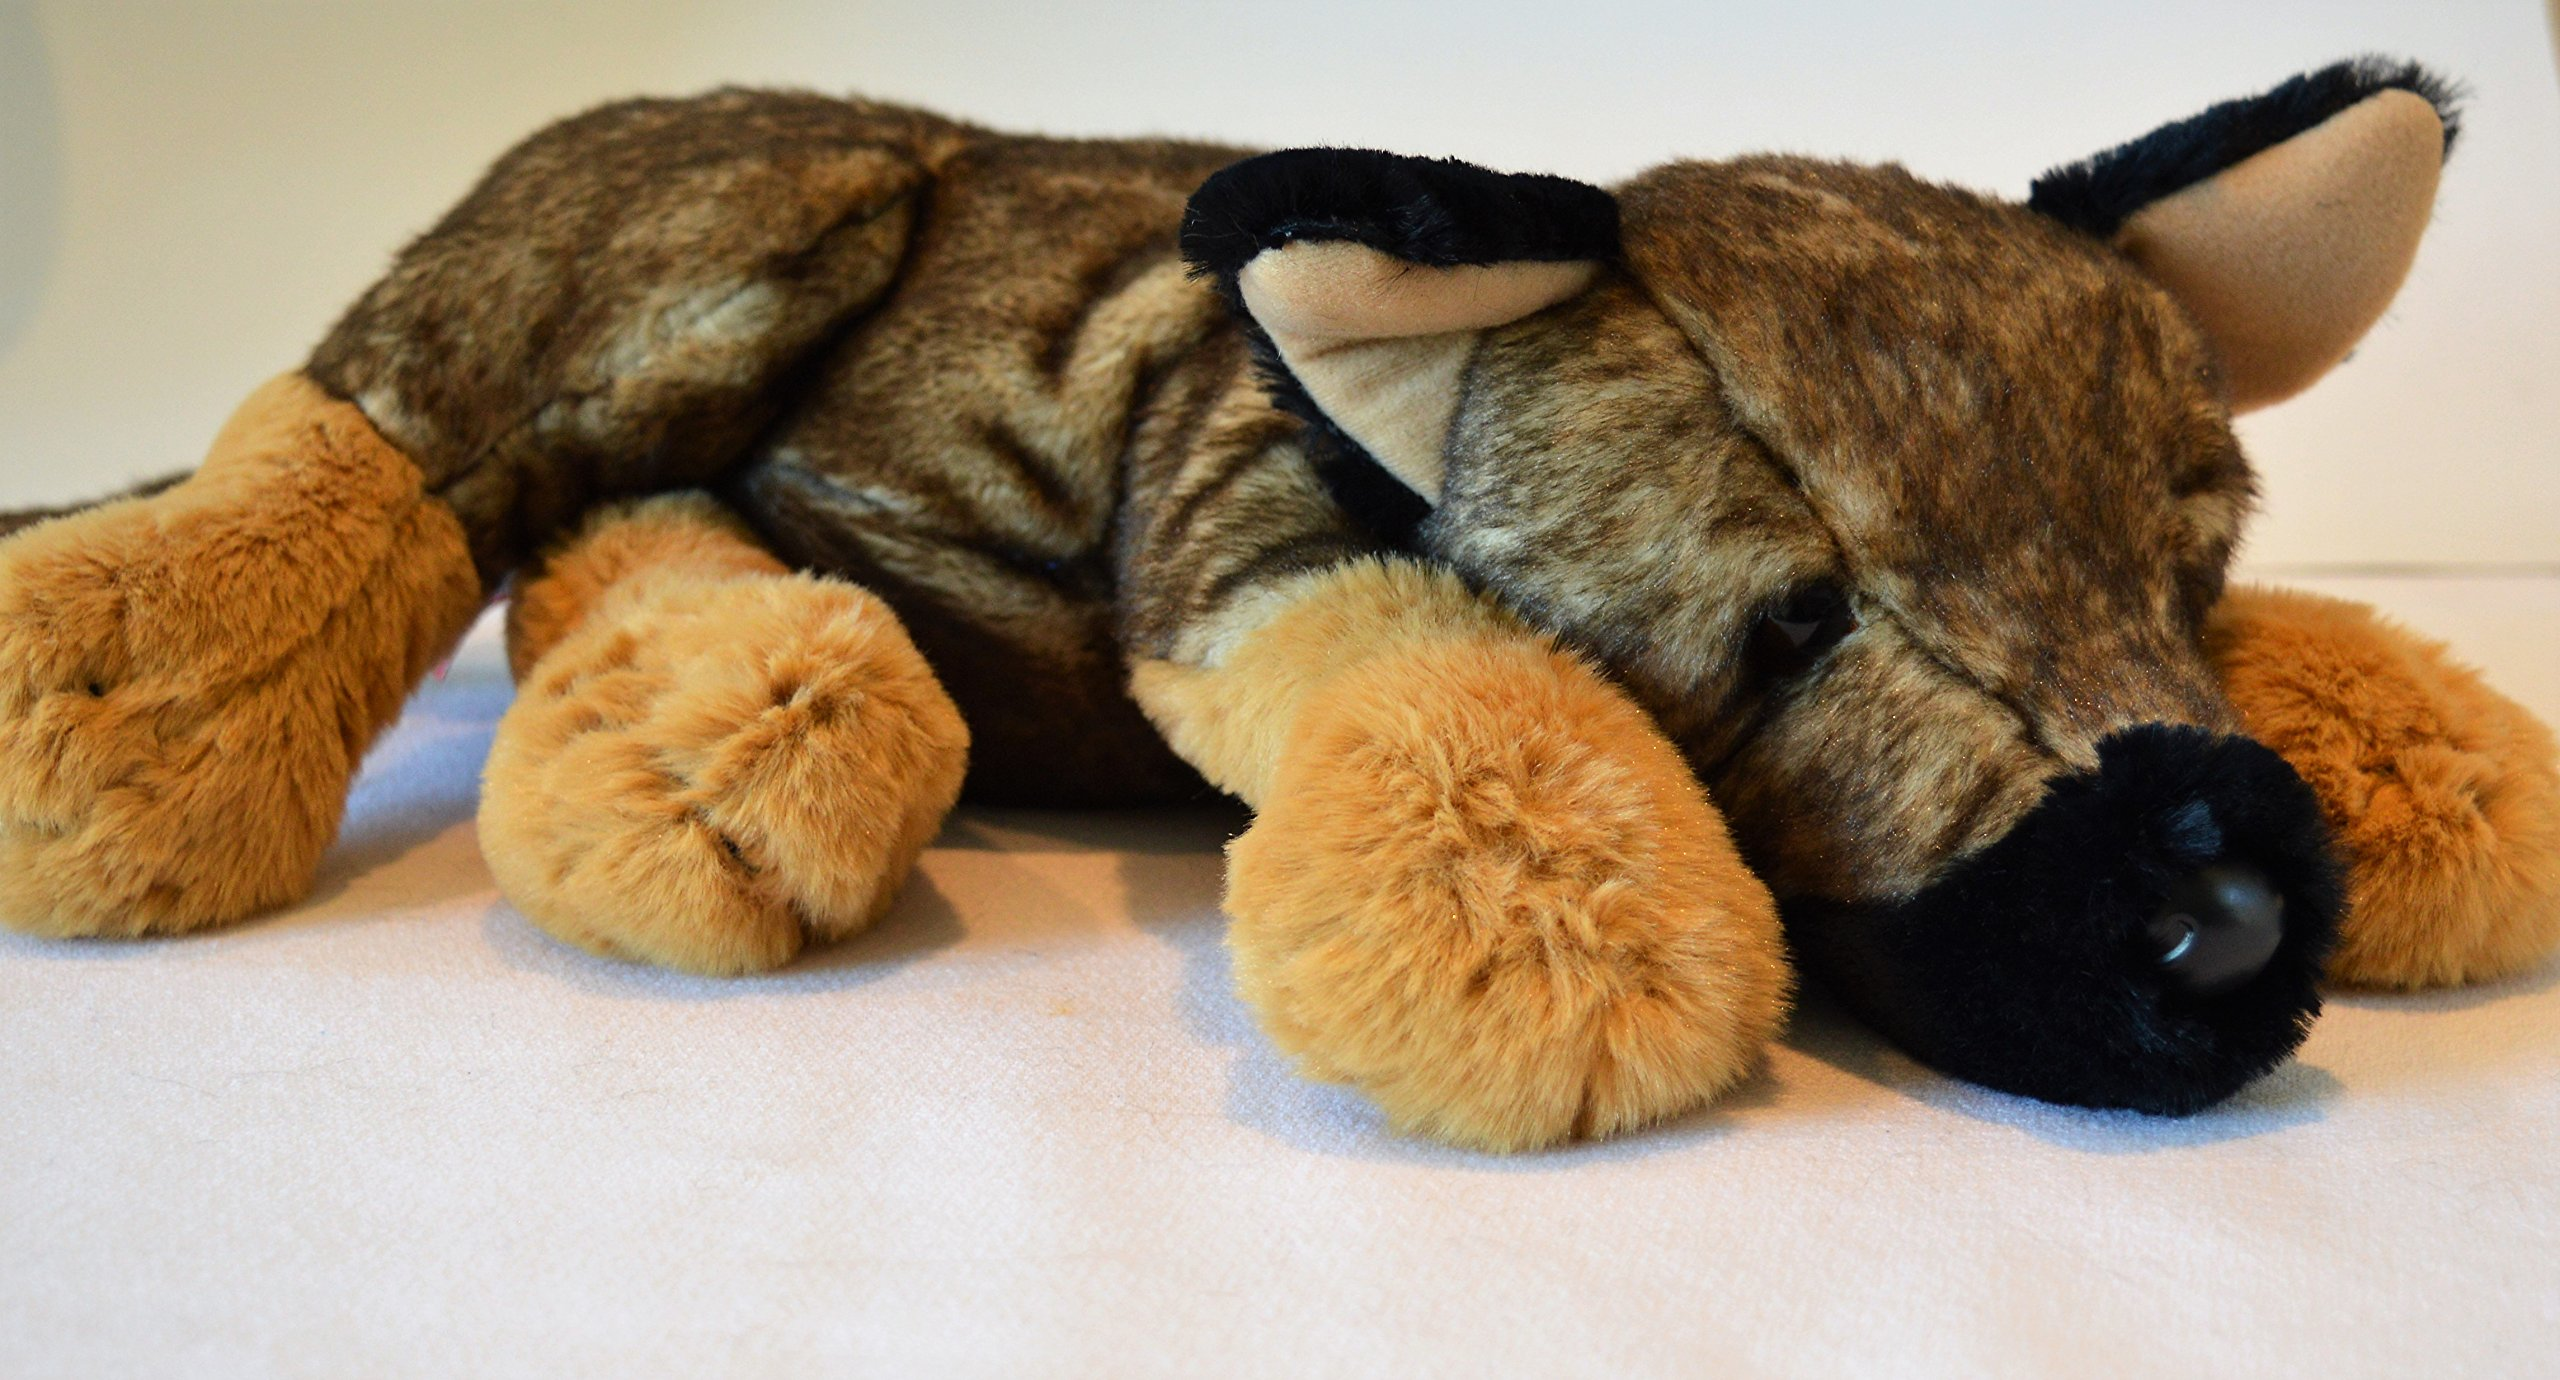 Reclining German Shepherd Puppy - Stuffed Animal Therapy for People with Memory Loss from Aging and Caregivers